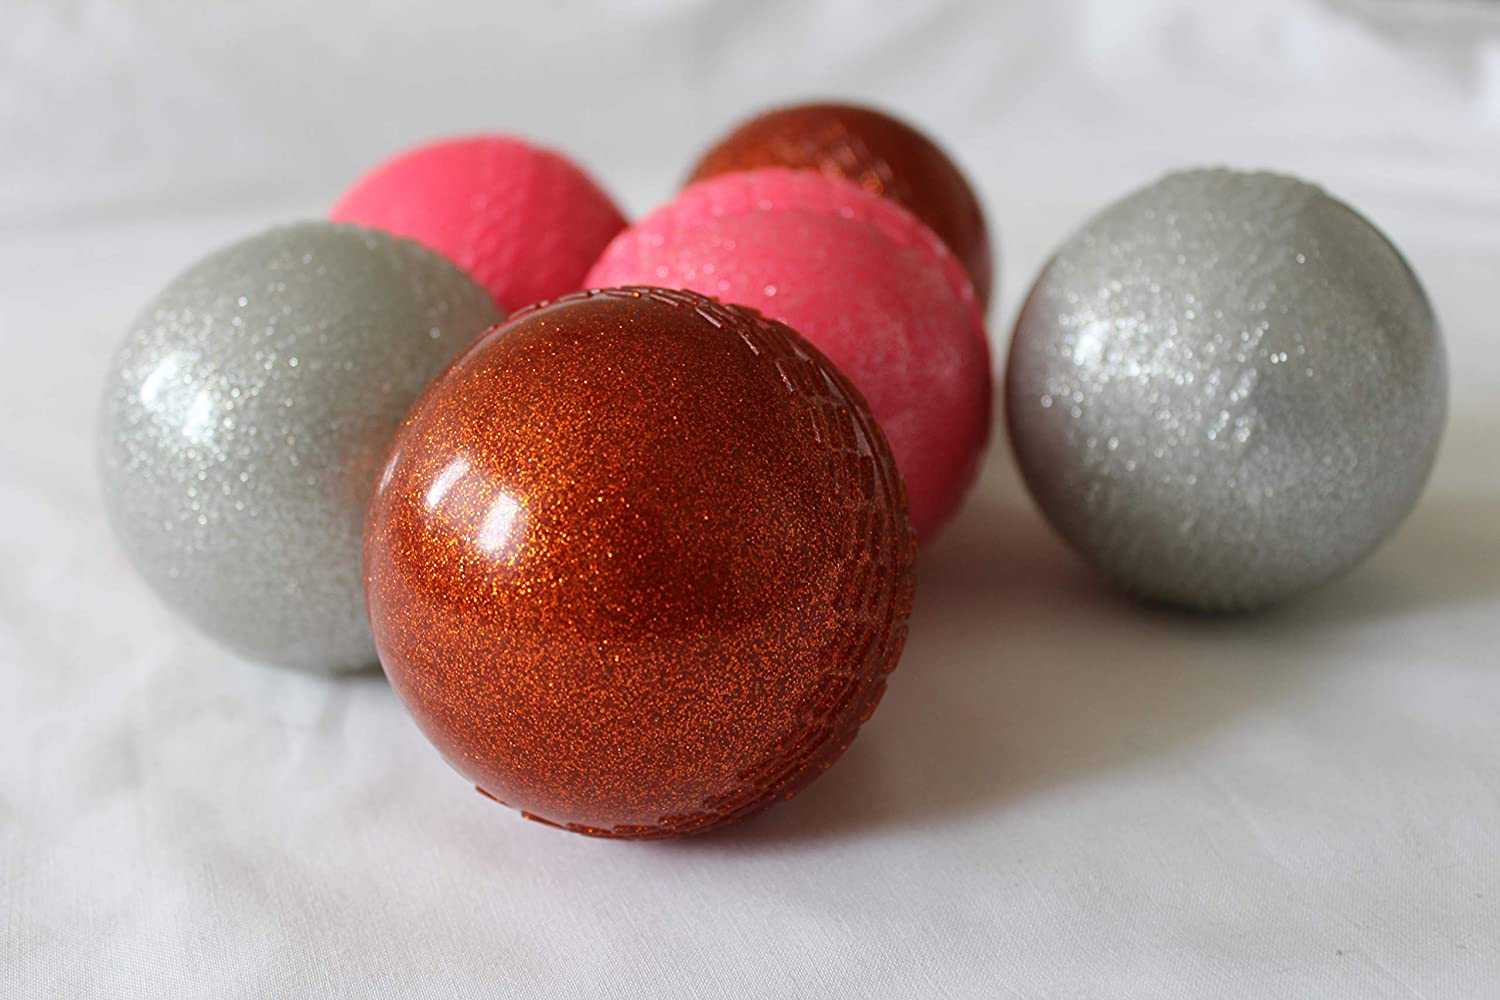 sports-24 Lot de 6 Boules Creuses de Cricket en cuivre Brillant, Couleur Rose, argenté, pour Adulte, Junior, Junior, Junior, Assortiment de Couleurs Assorties